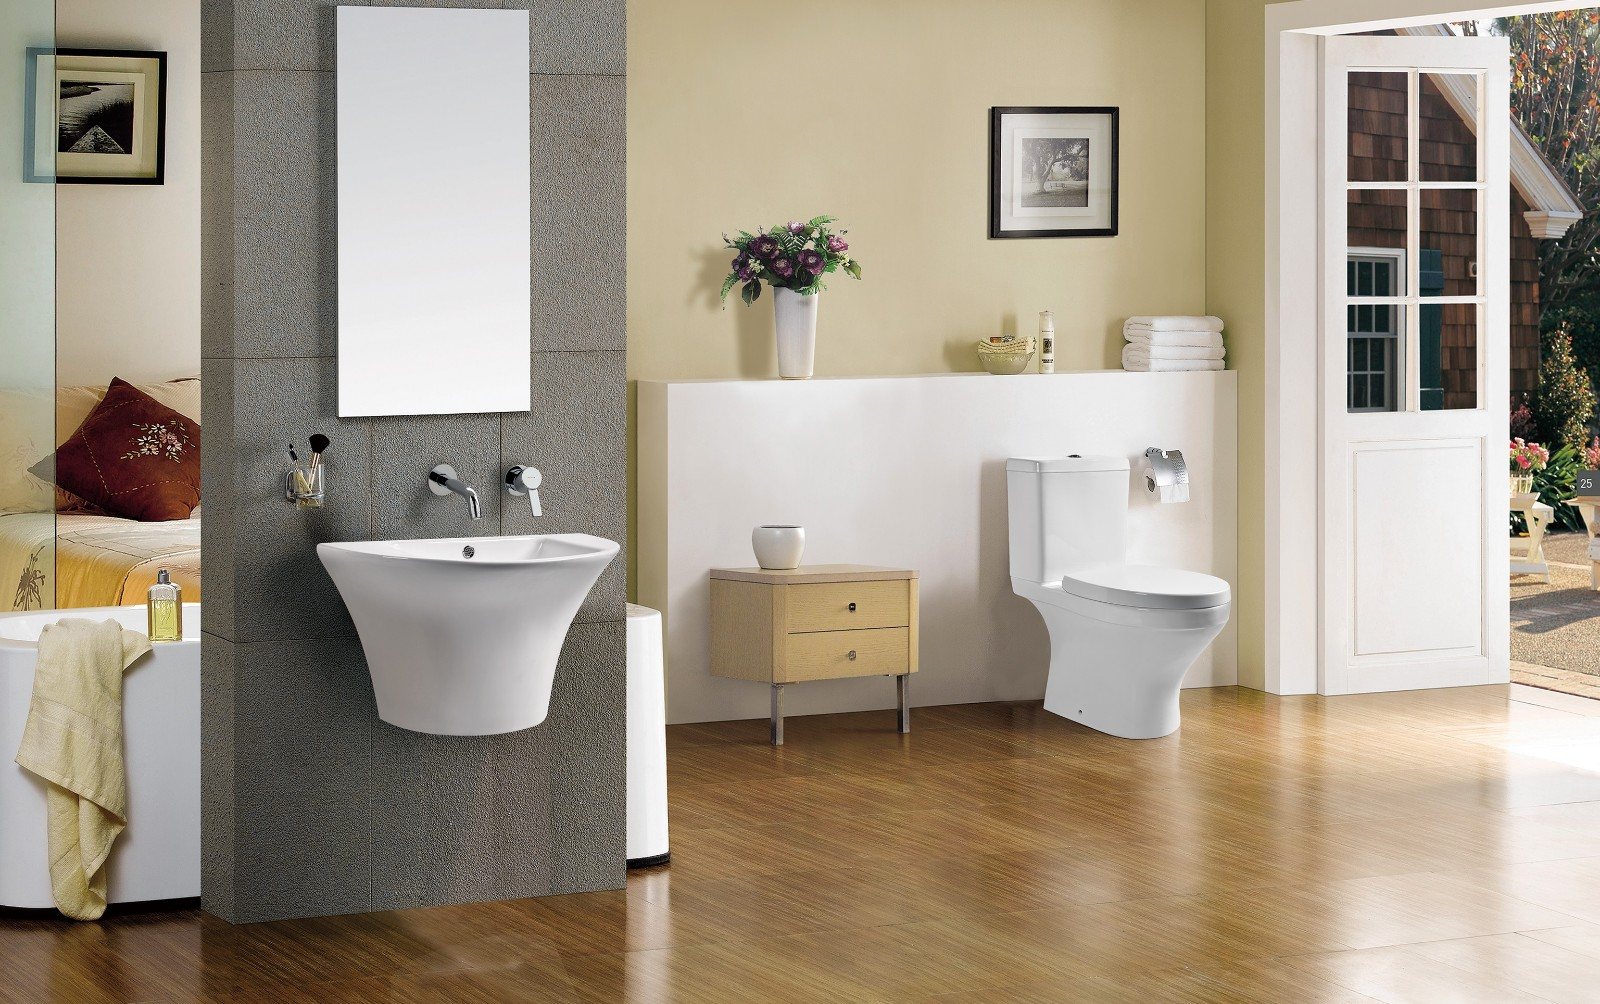 fashionable two piece toilet design factory price for residential building-5